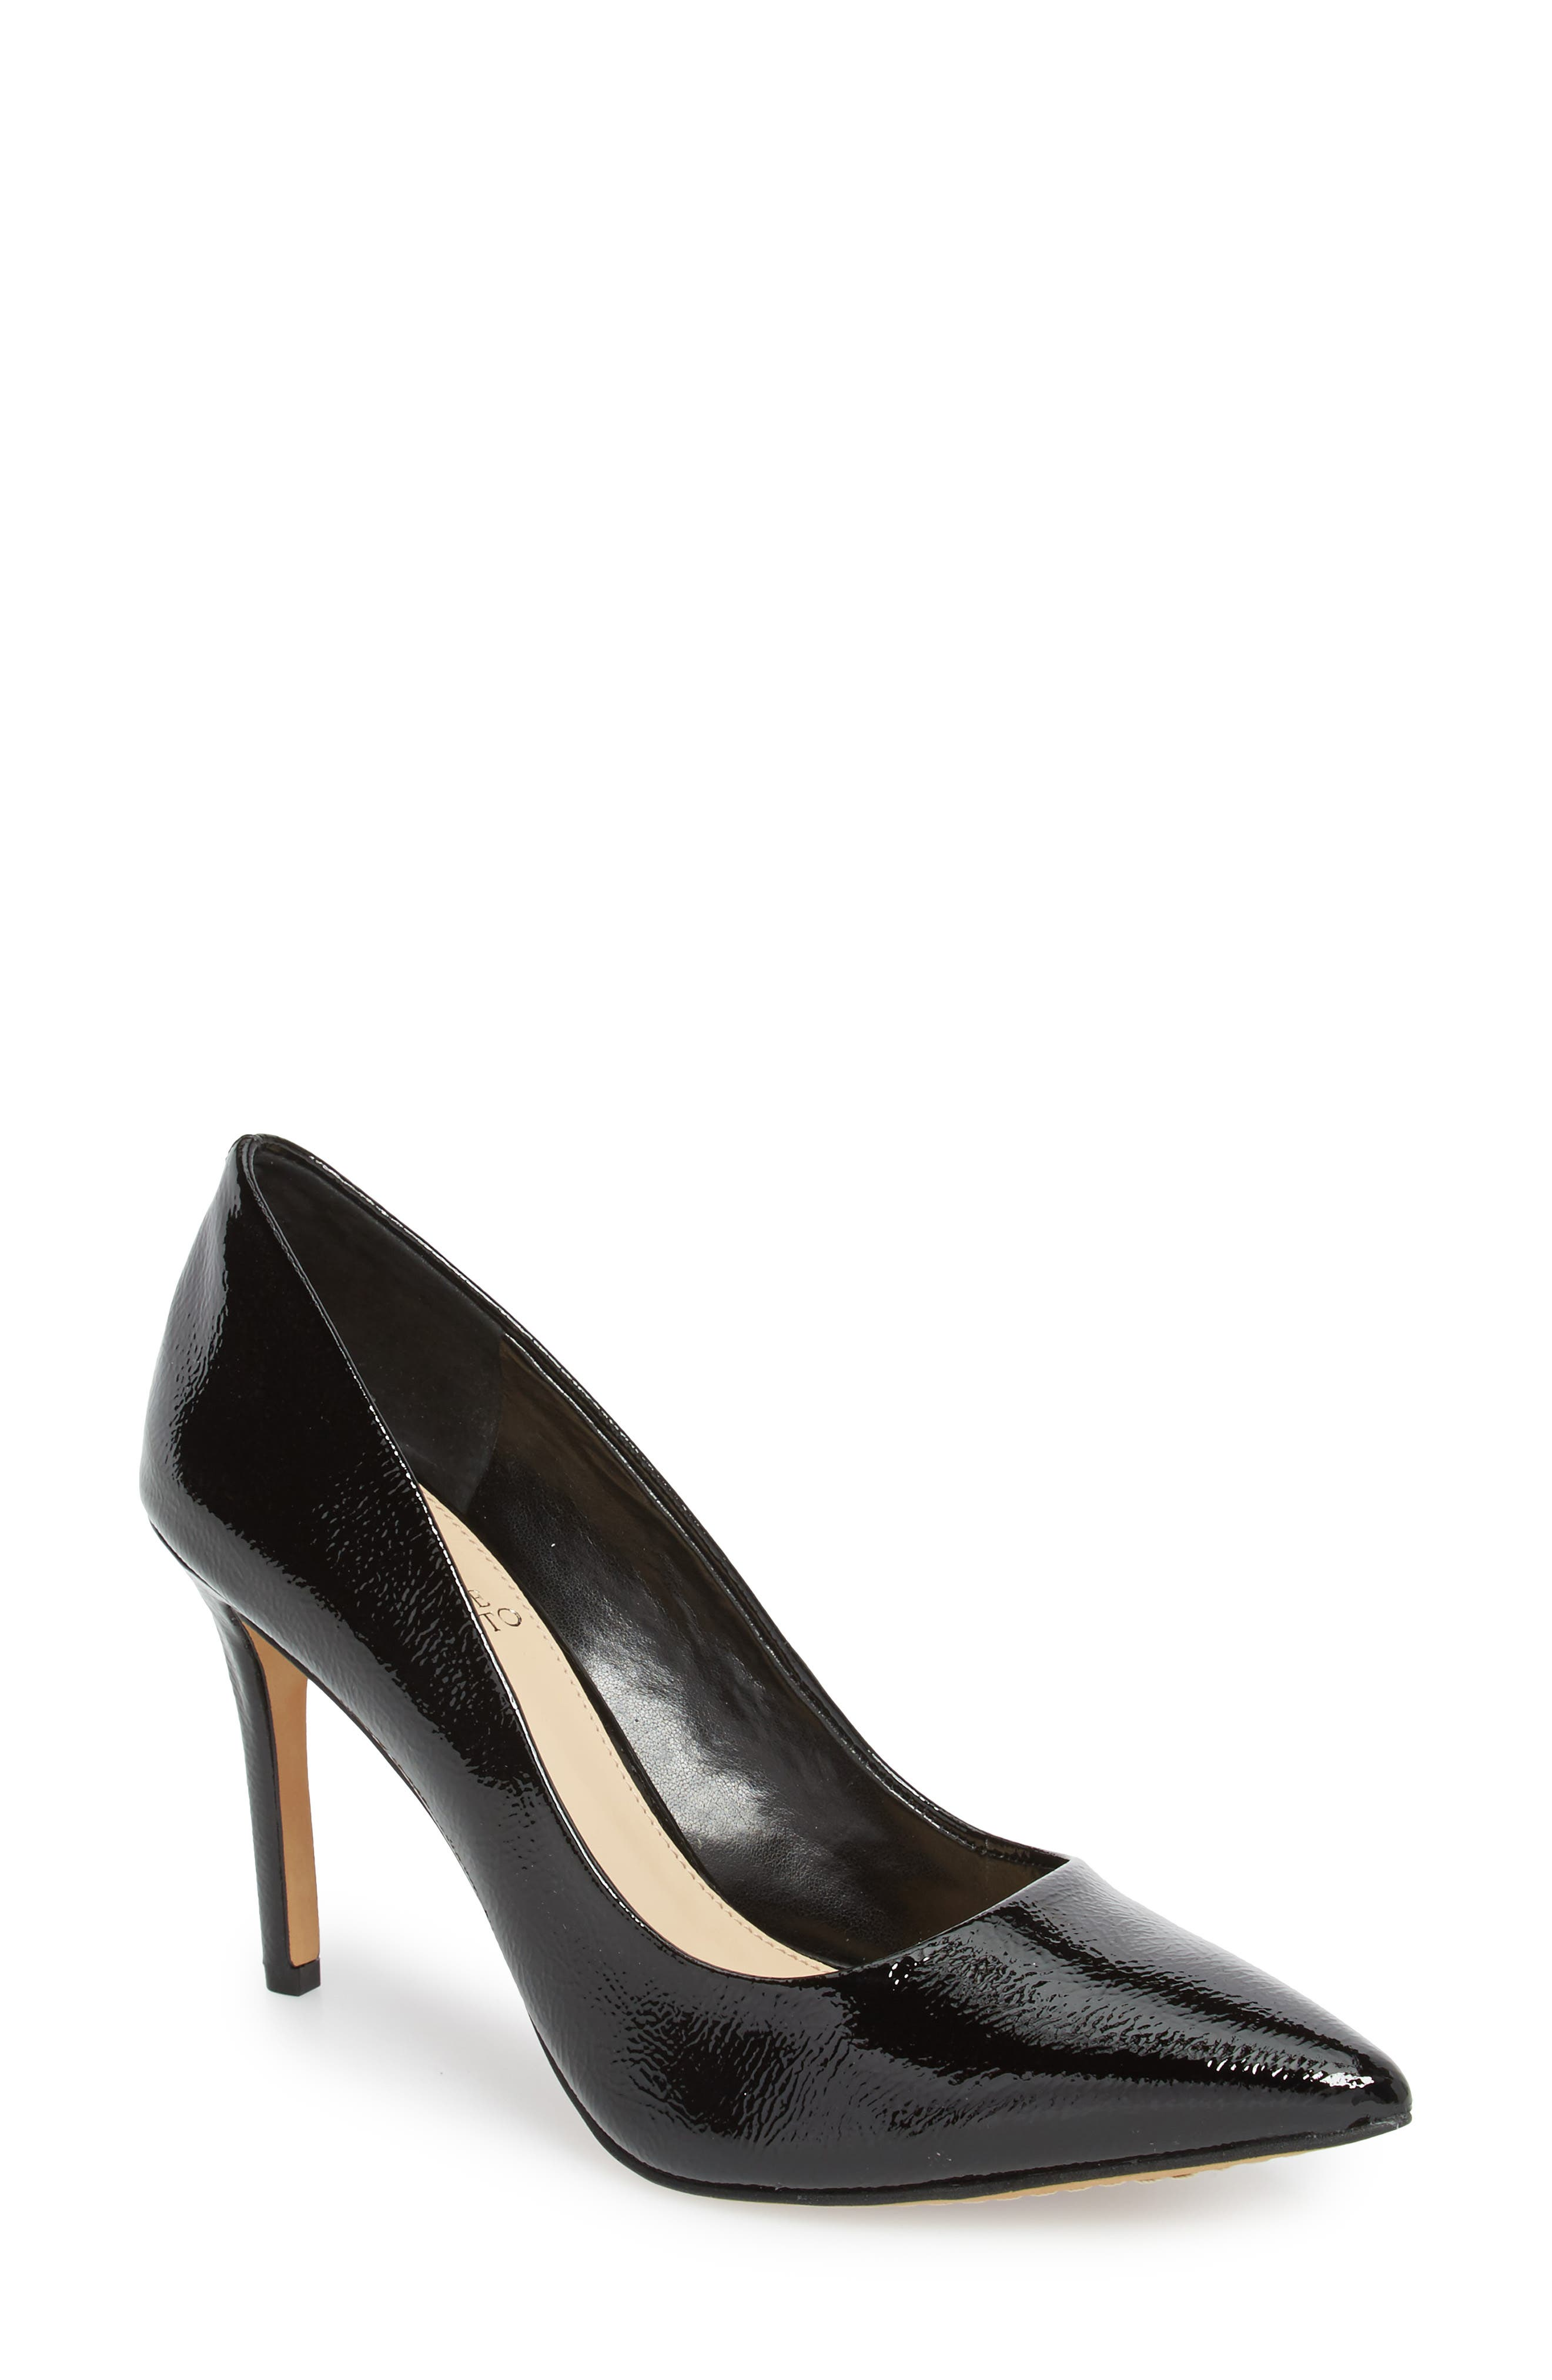 Savilla Pump,                         Main,                         color, Black Patent